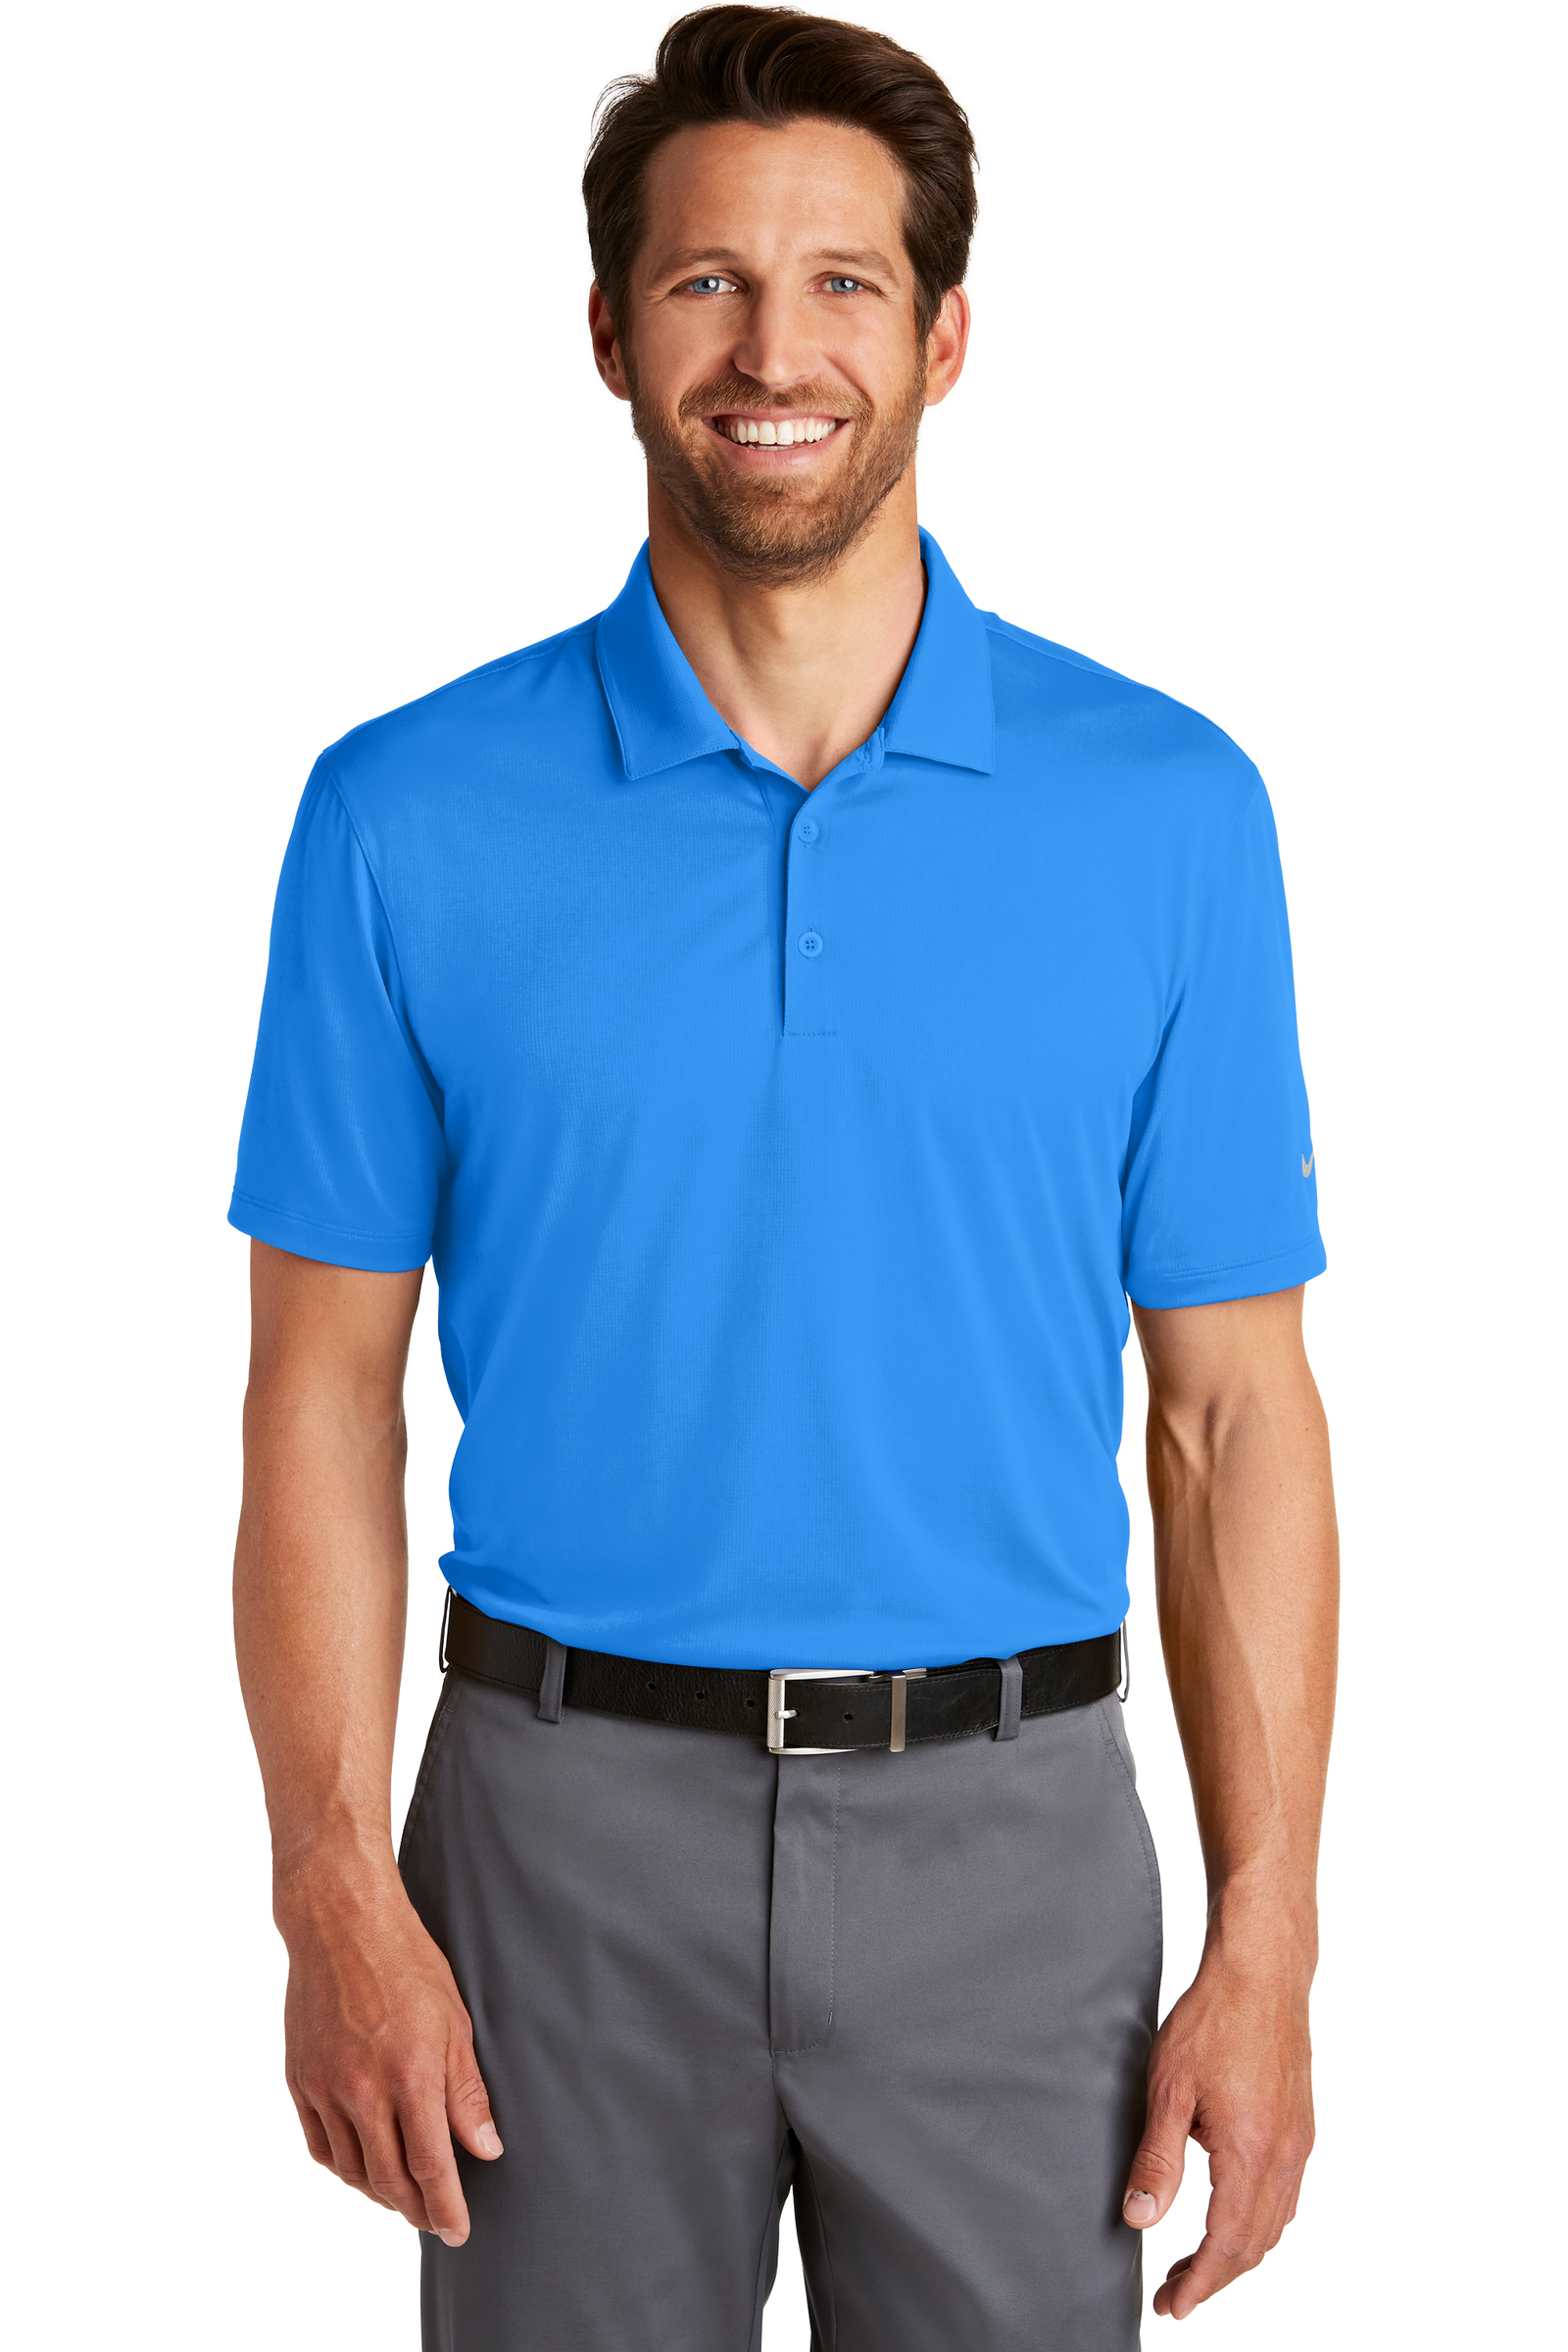 Nike Embroidered Men's Dri-FIT Legacy Polo